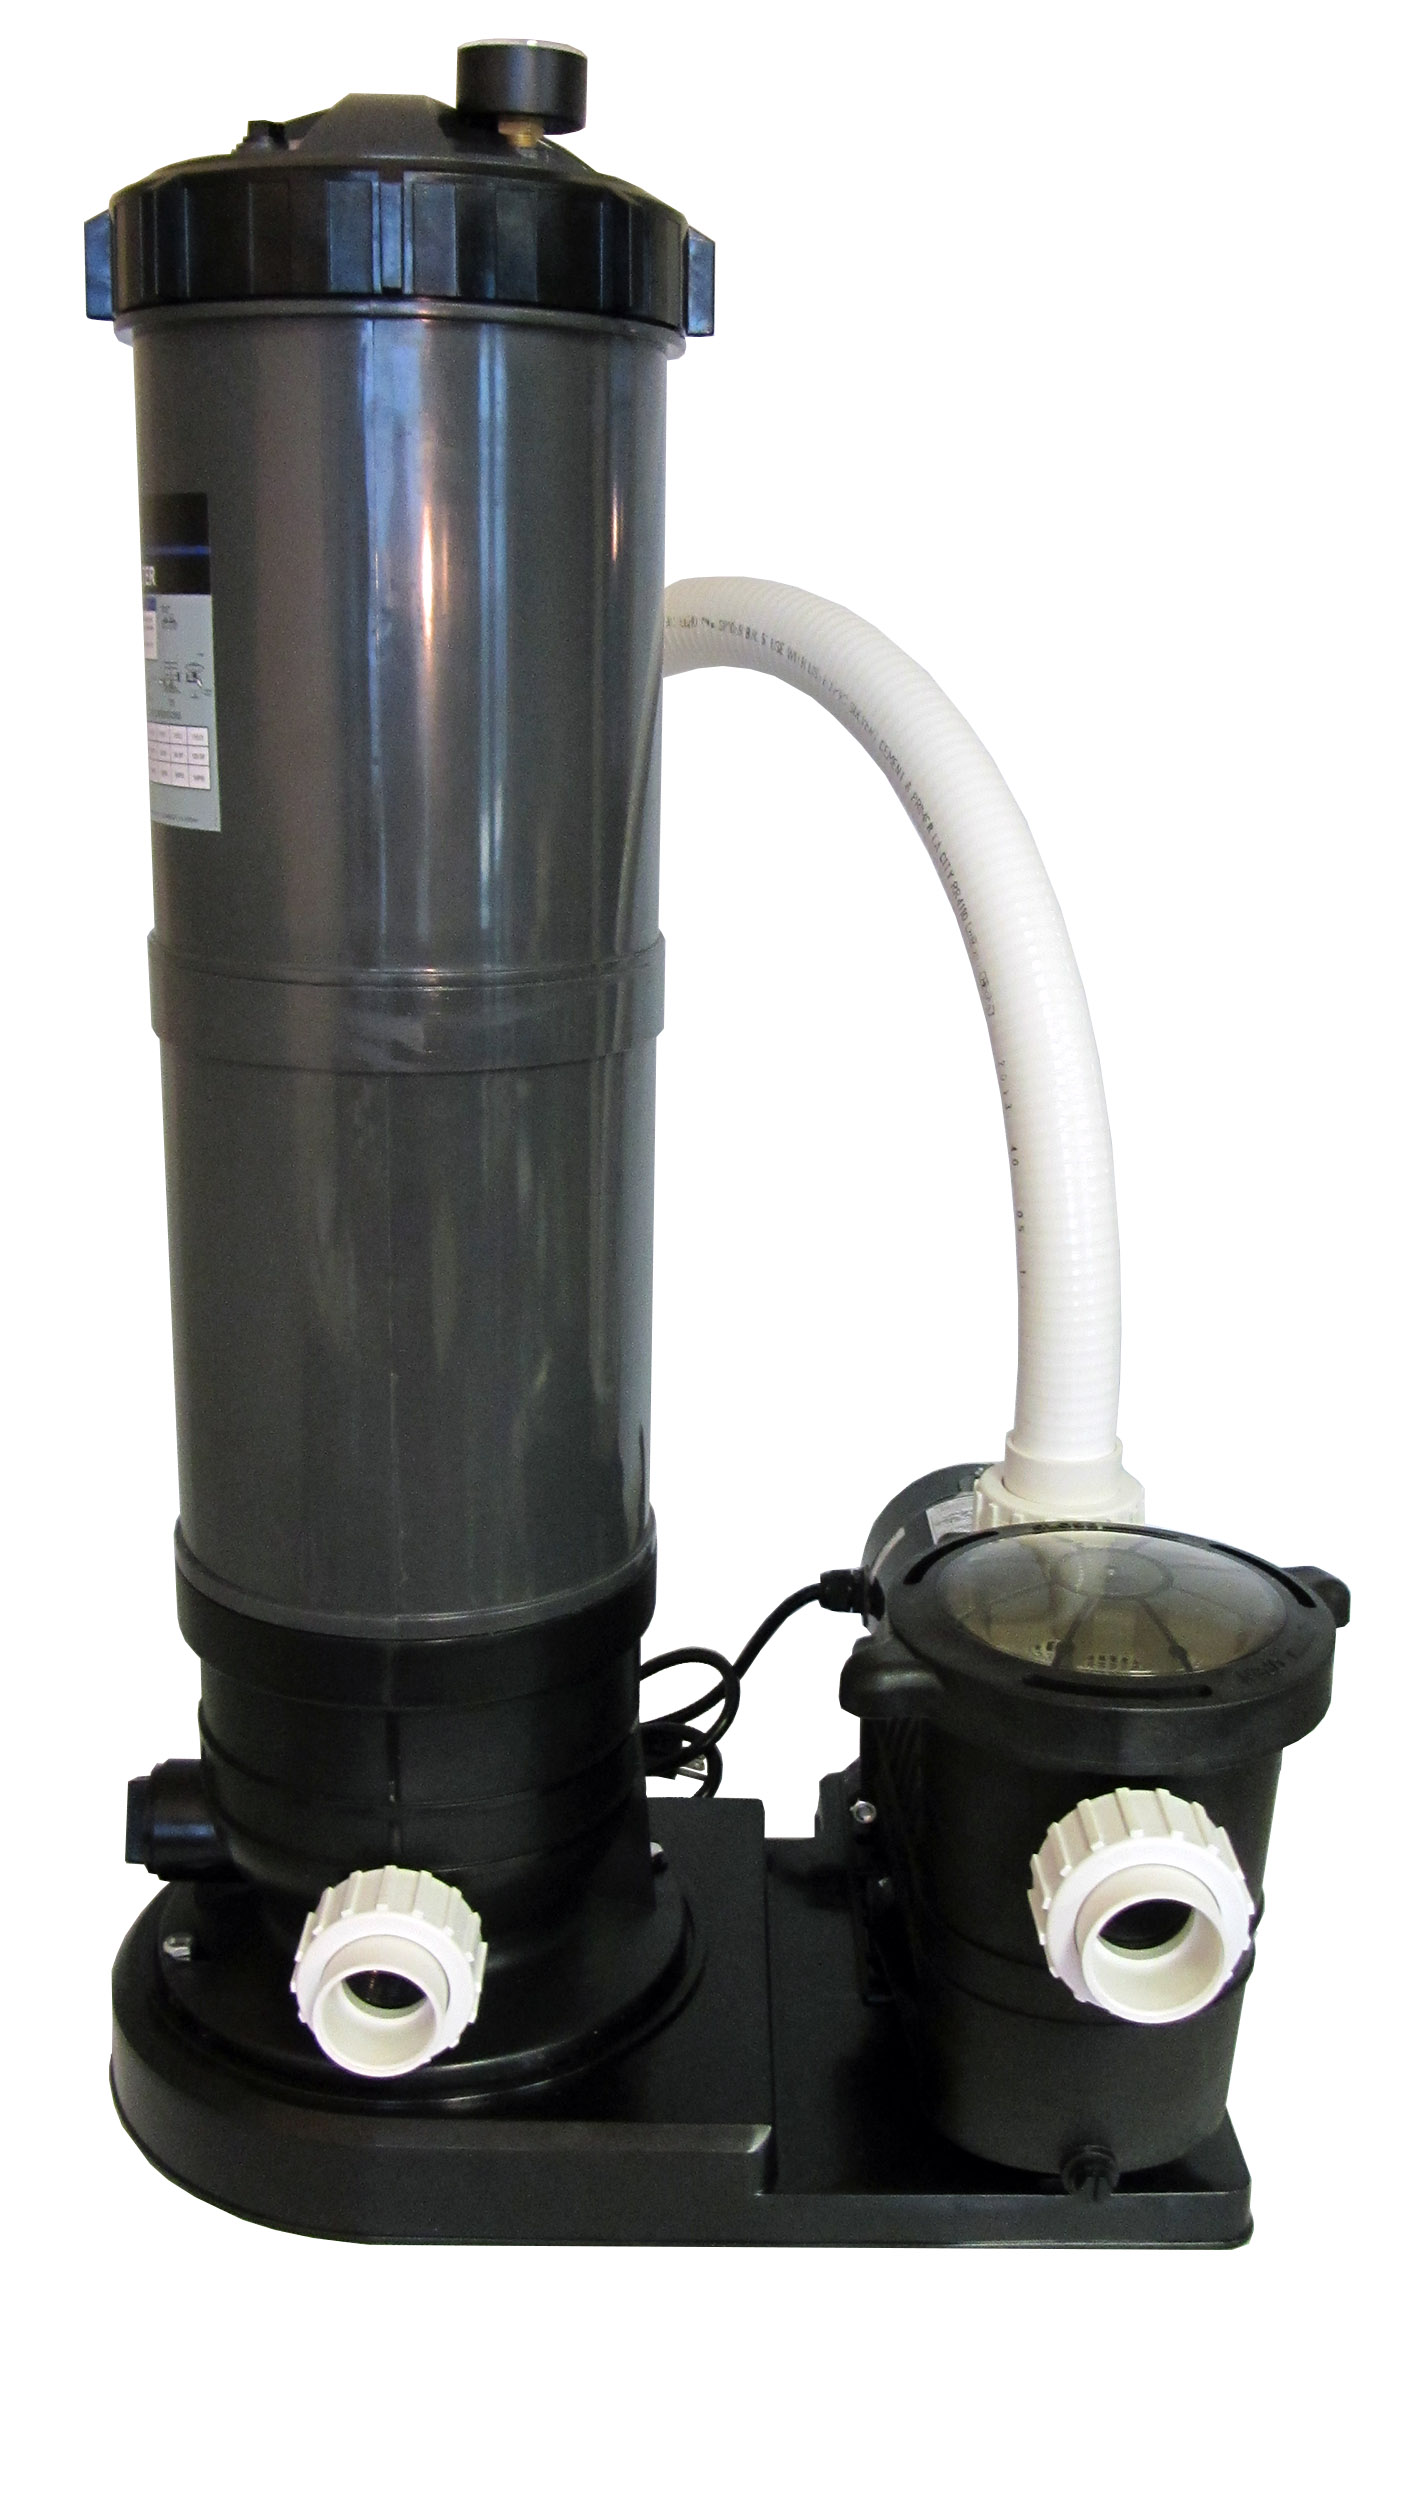 In ground swimming pool cartridge filter system with 2 for Pool filterpumpe obi